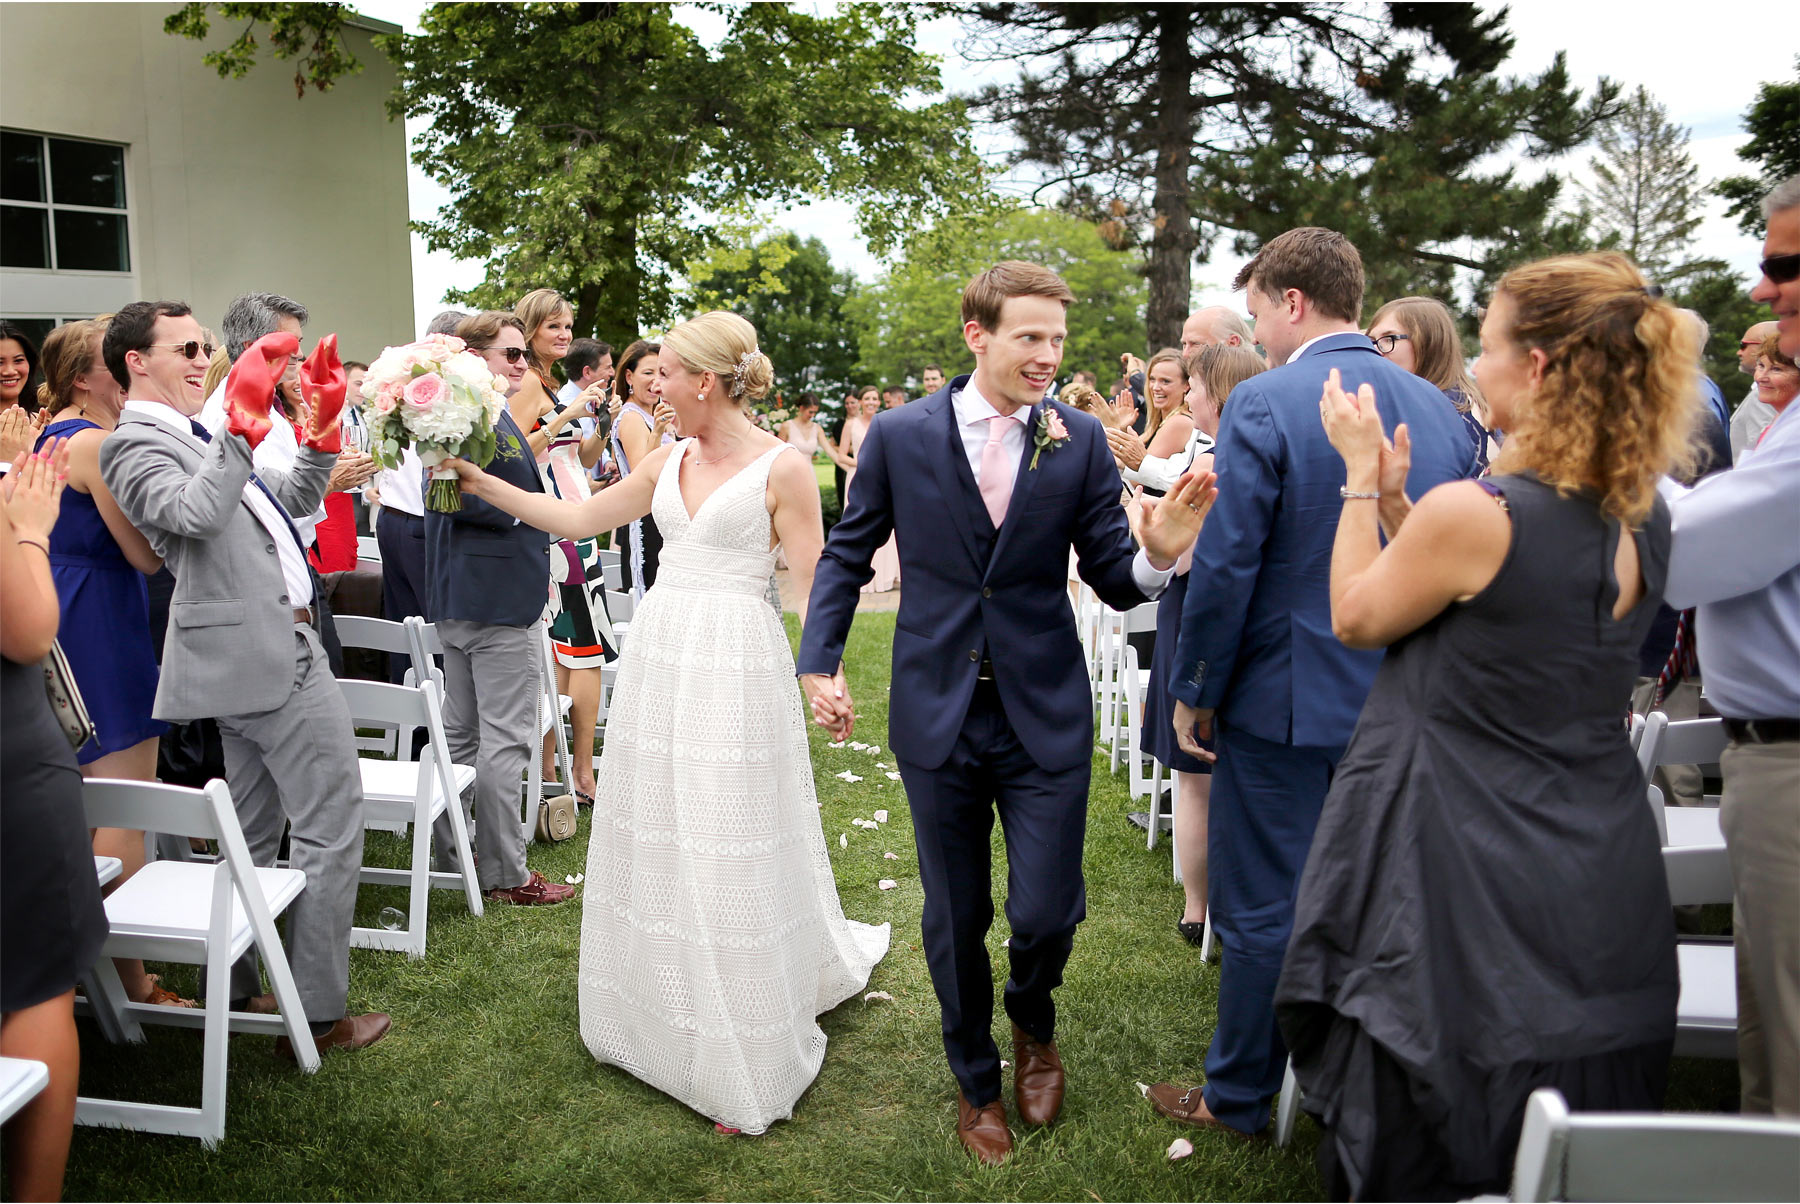 13-Minneapolis-Minnesota-Wedding-Photography-by-Vick-Photography-Lafayette-Club-Outdoor-Ceremony-Maggie-and-Nicholas.jpg